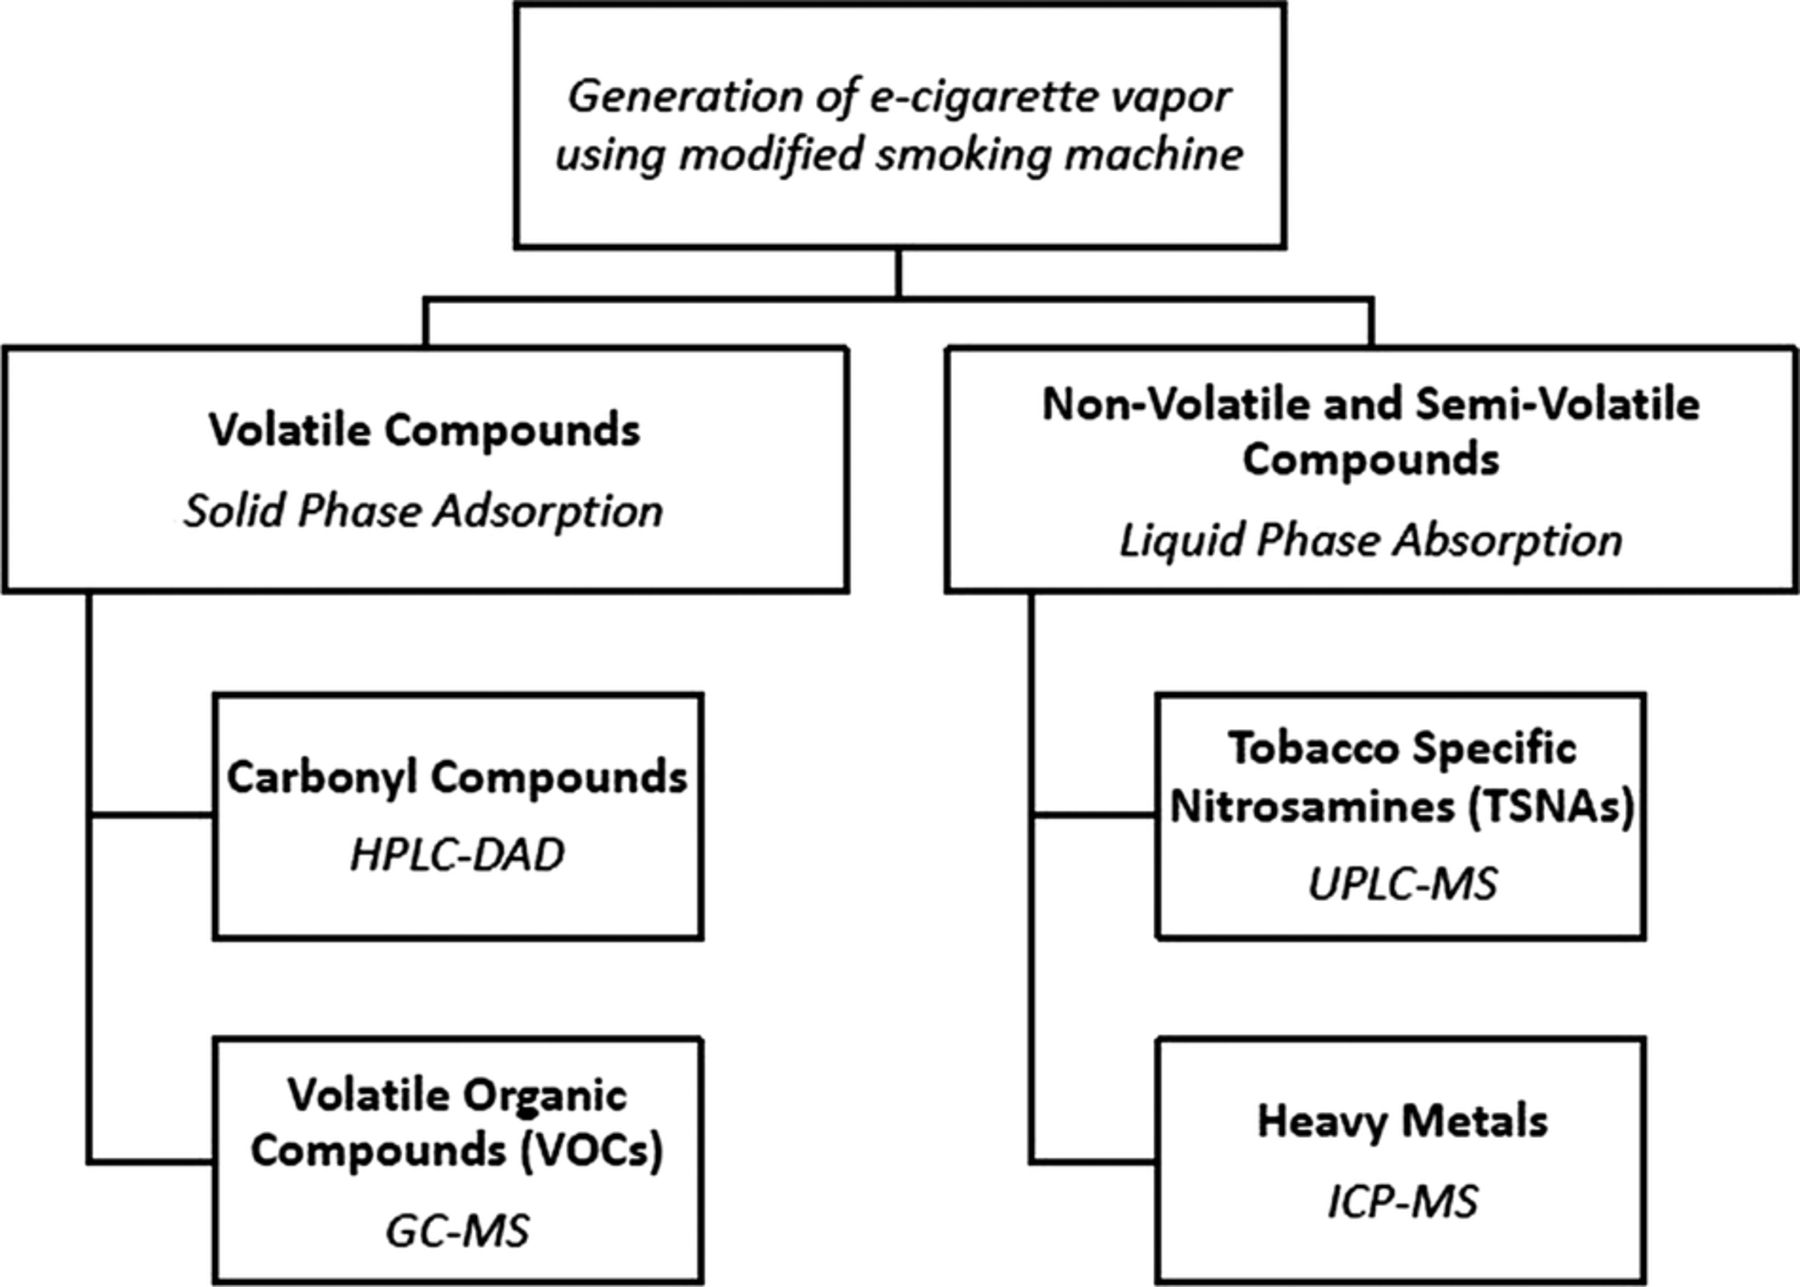 levels of selected carcinogens and toxicants in vapour from